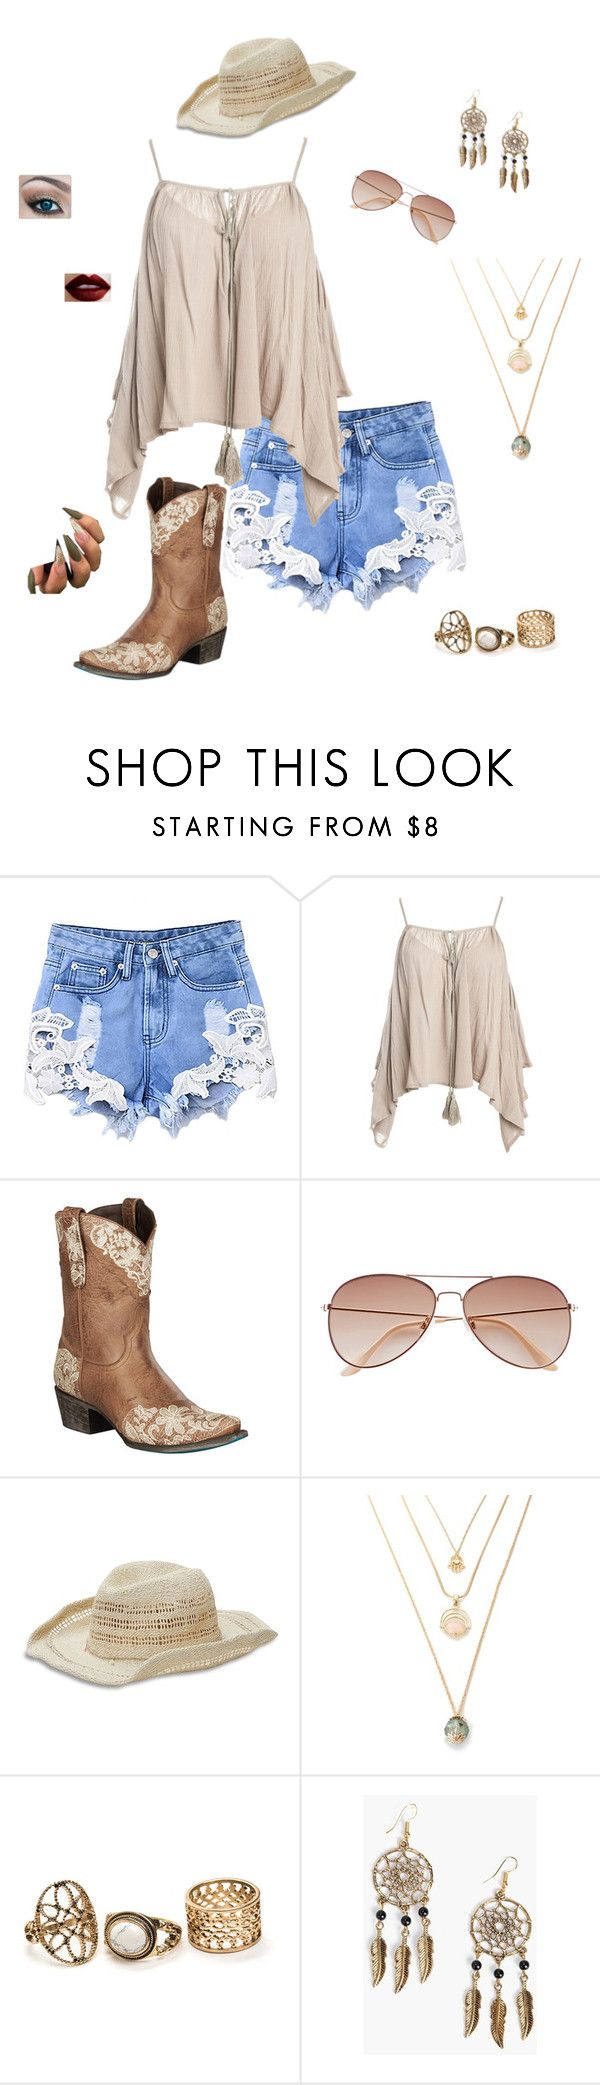 """Country Music Festival"" by fashiongirl329 on Polyvore featuring Sans Souci, H&M, Lucky Brand, Boohoo and country"